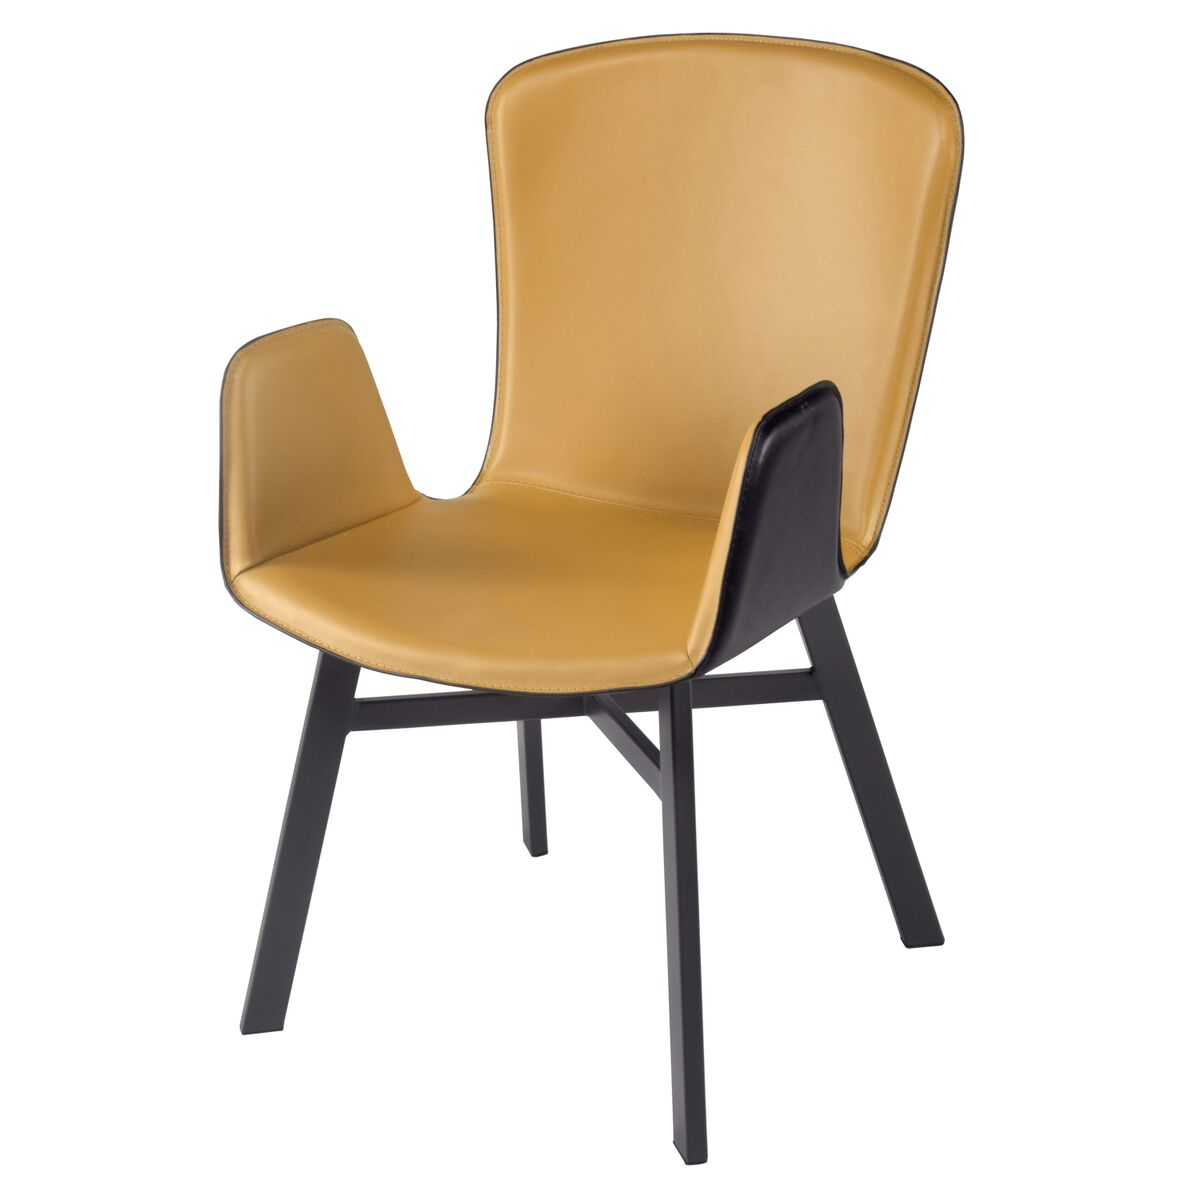 Unique Leatherette Guest or Conference Chair in Ginger and Black